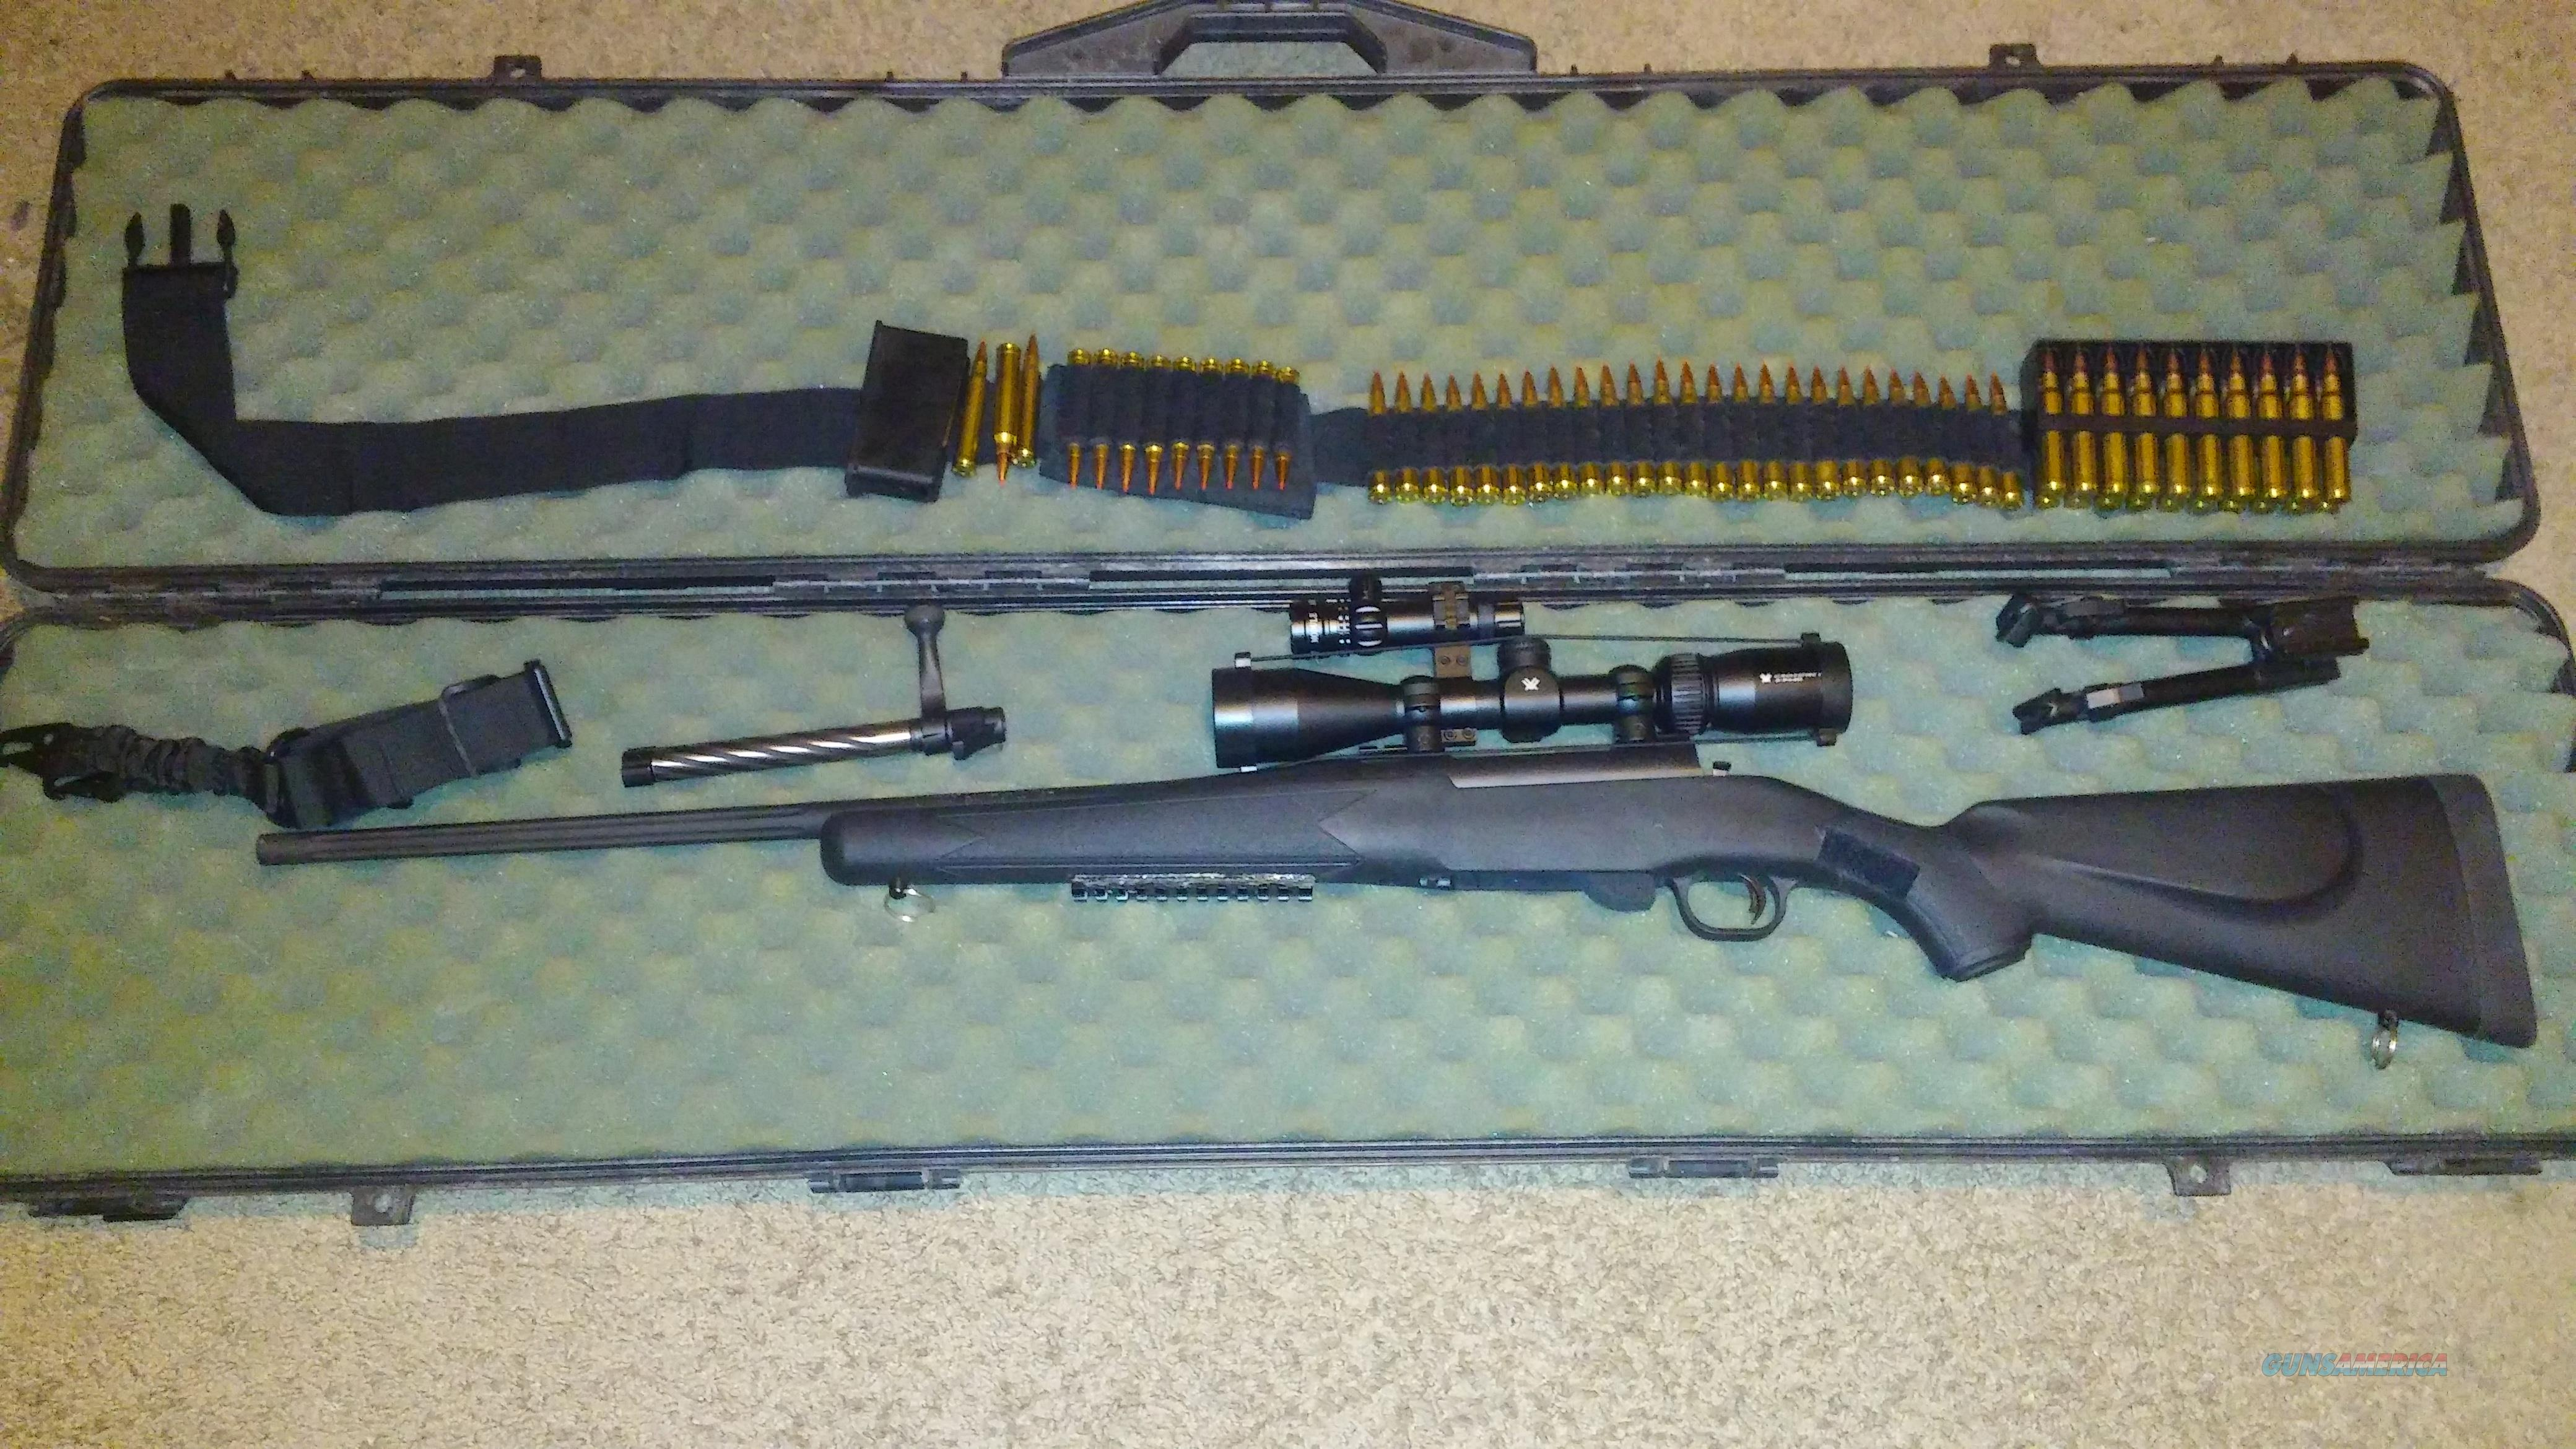 Mossberg Patriot .300 Win Mag Vortex Combo plus extras  Guns > Rifles > Mossberg Rifles > Other Bolt Action